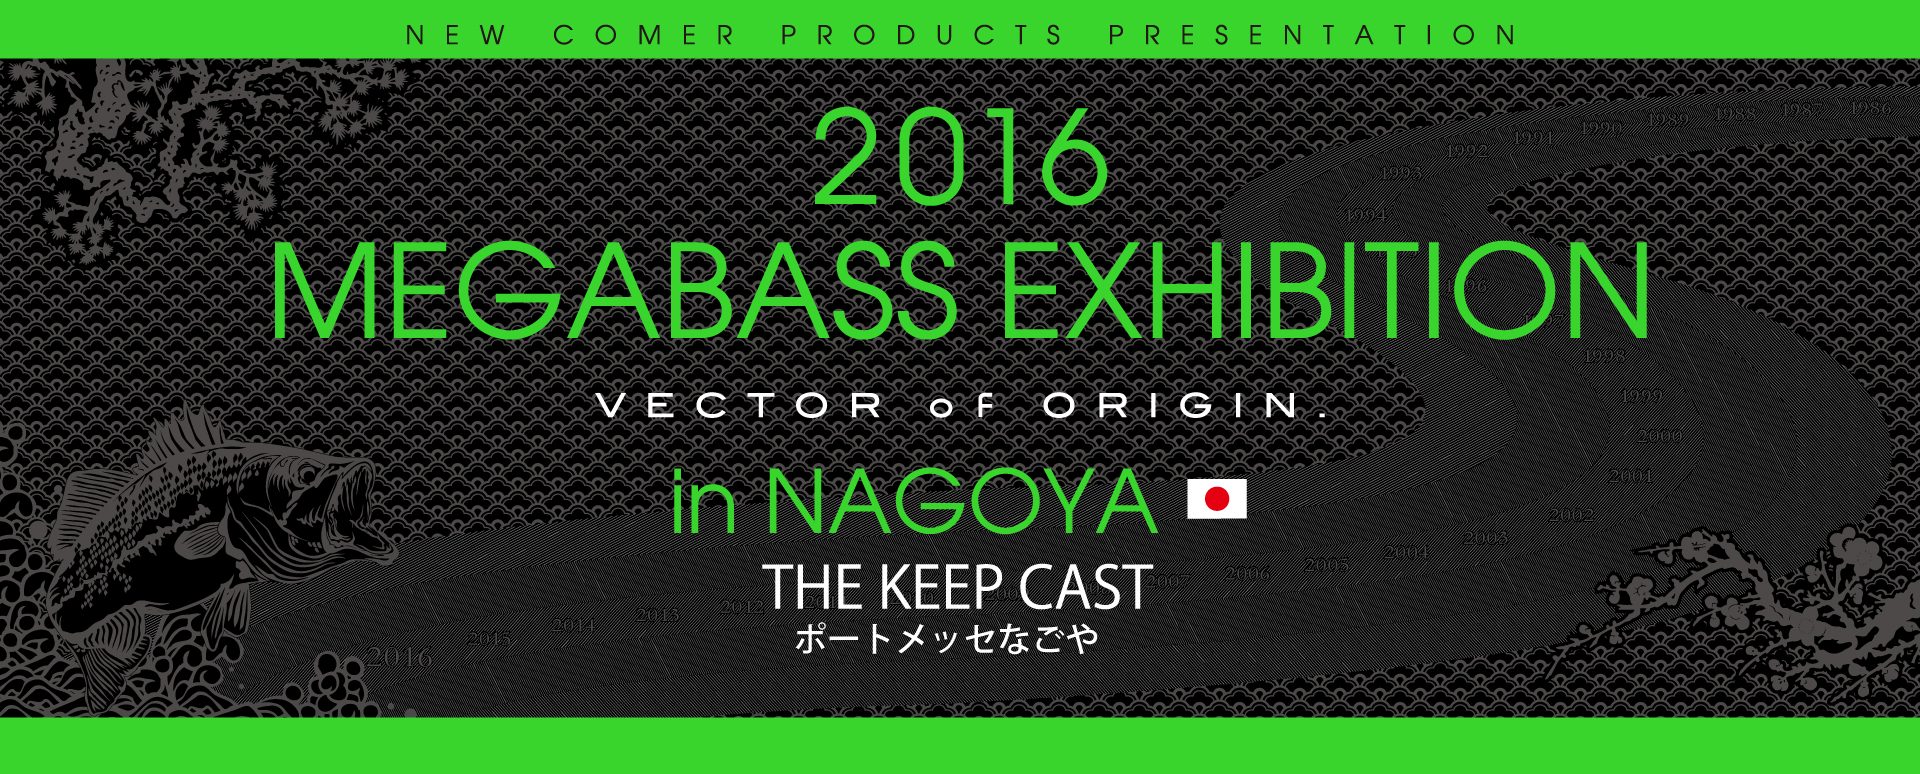 """MEGABASS EXHIBITION in NAGOYA"" SPECIAL THANKS!!"